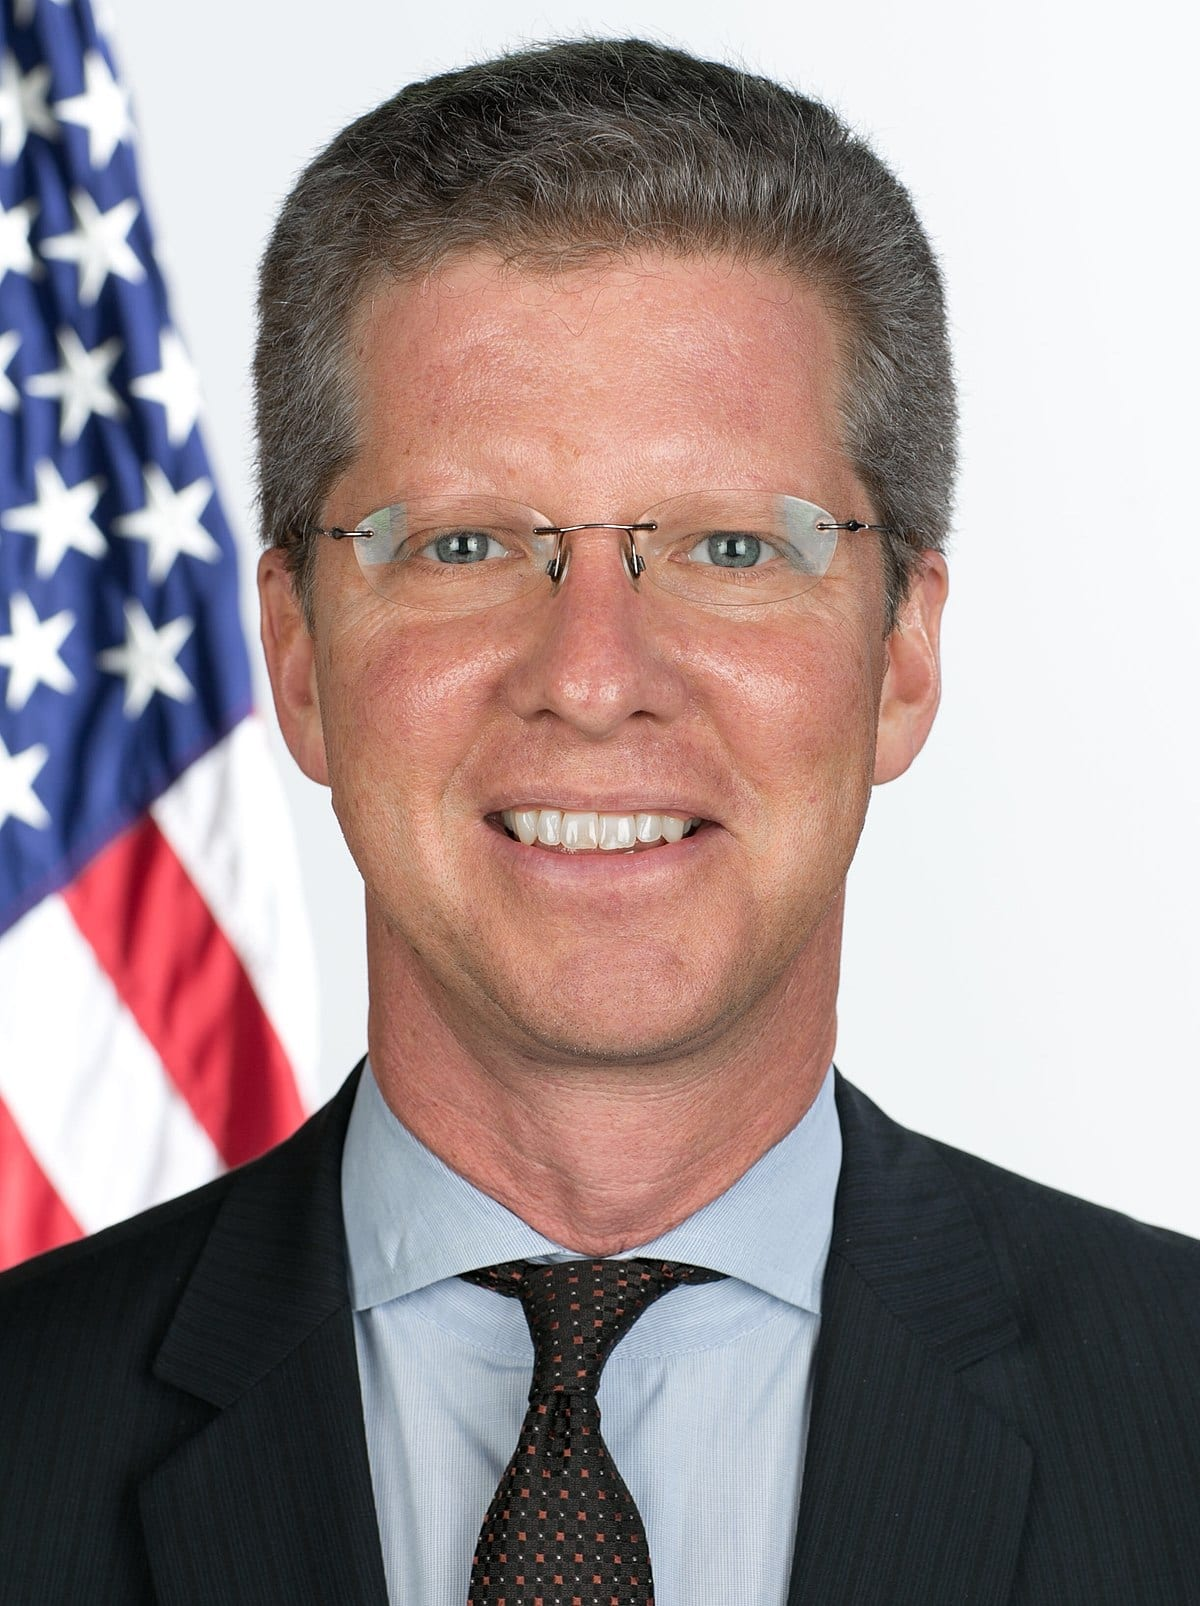 Photo of Shaun Donovan